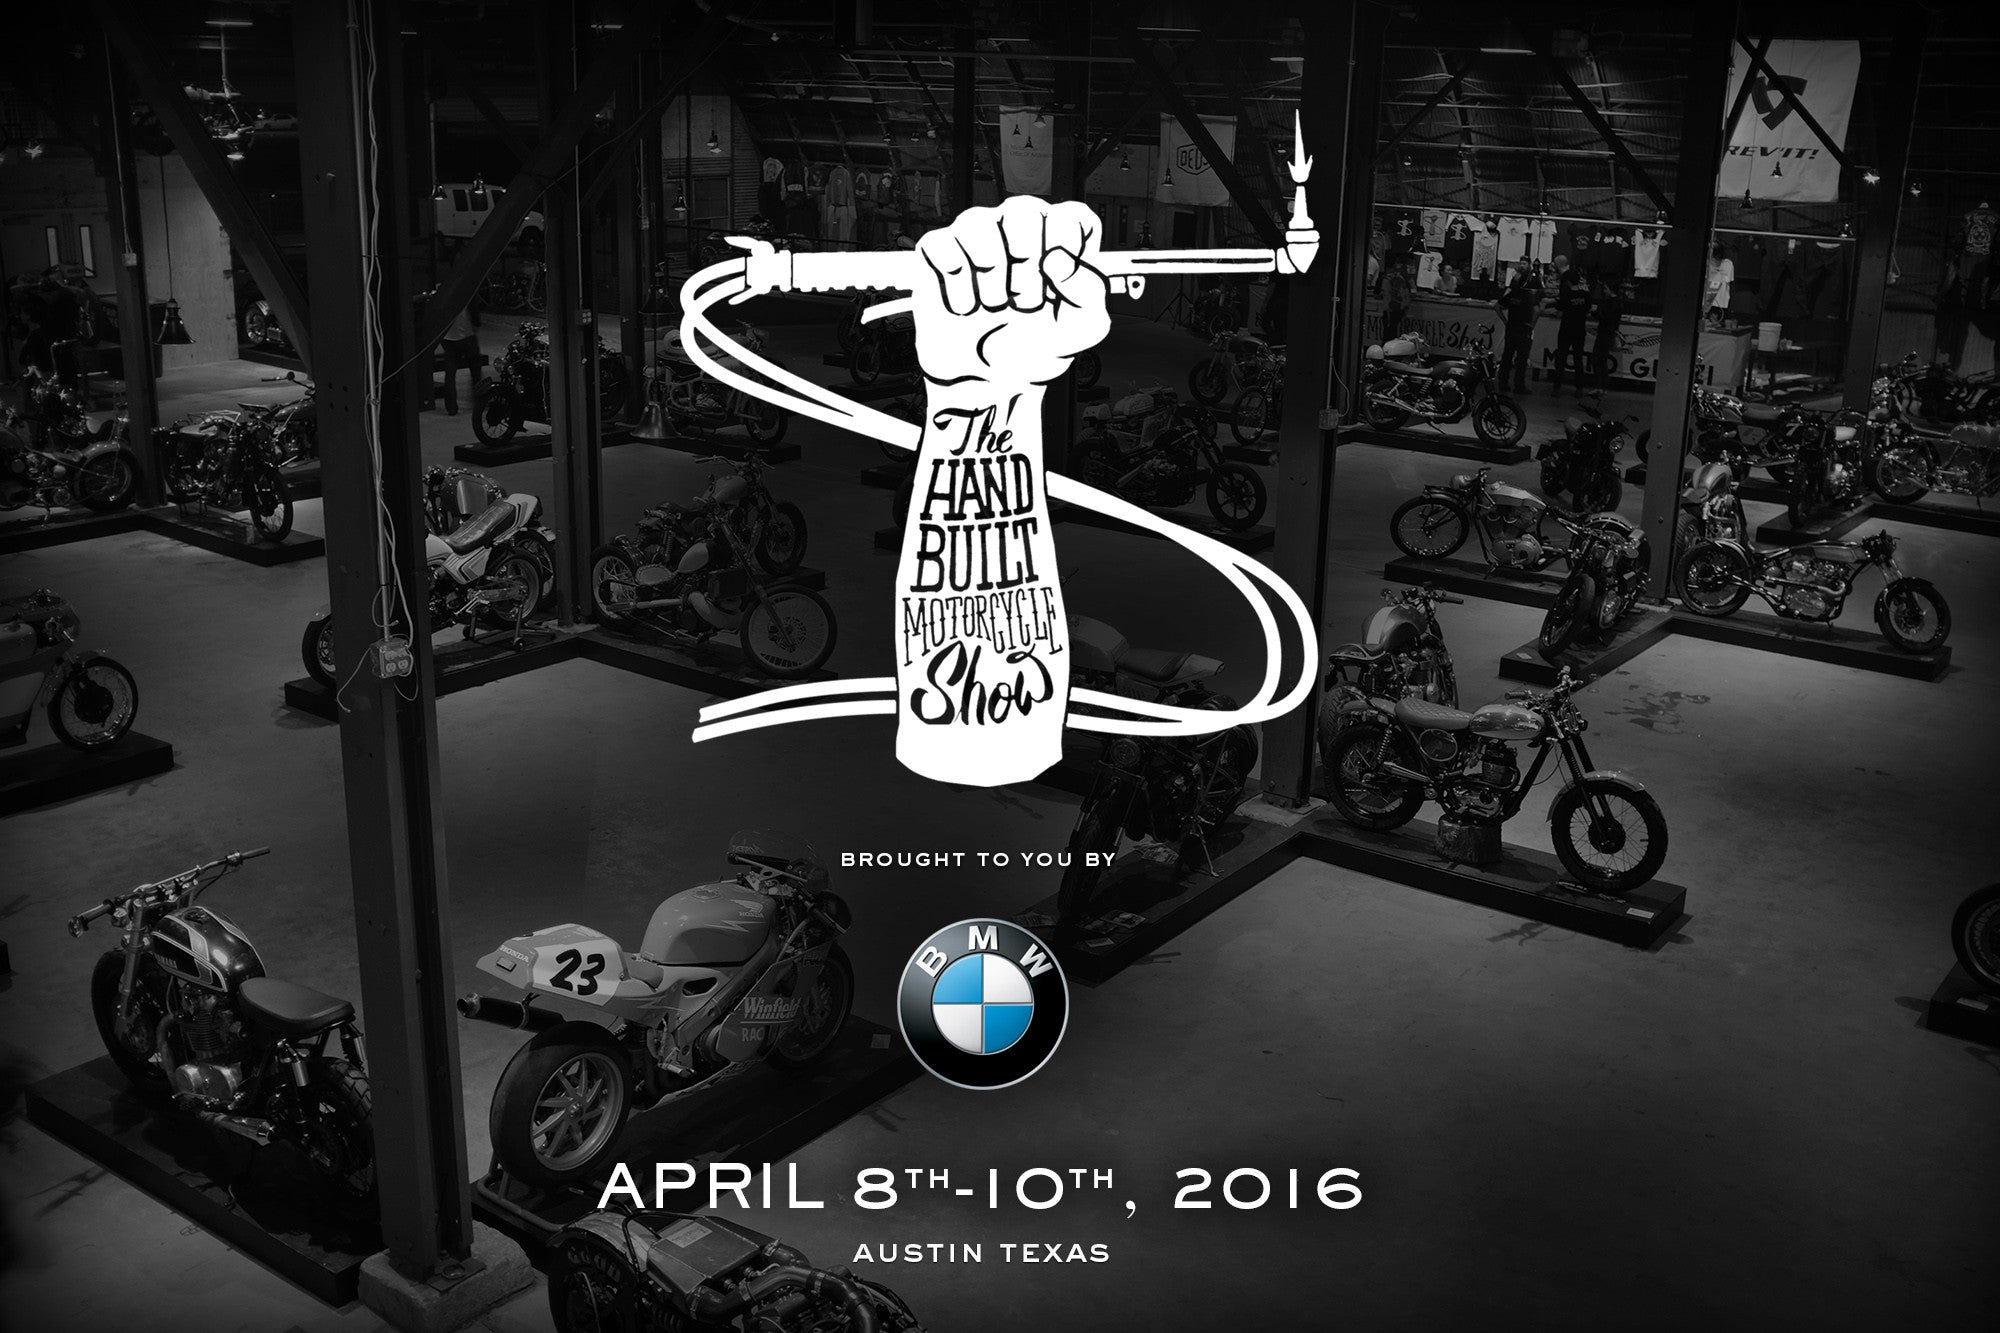 Fuller Moto Heads to The Handbuilt Motorcycle Show 2016 Austin